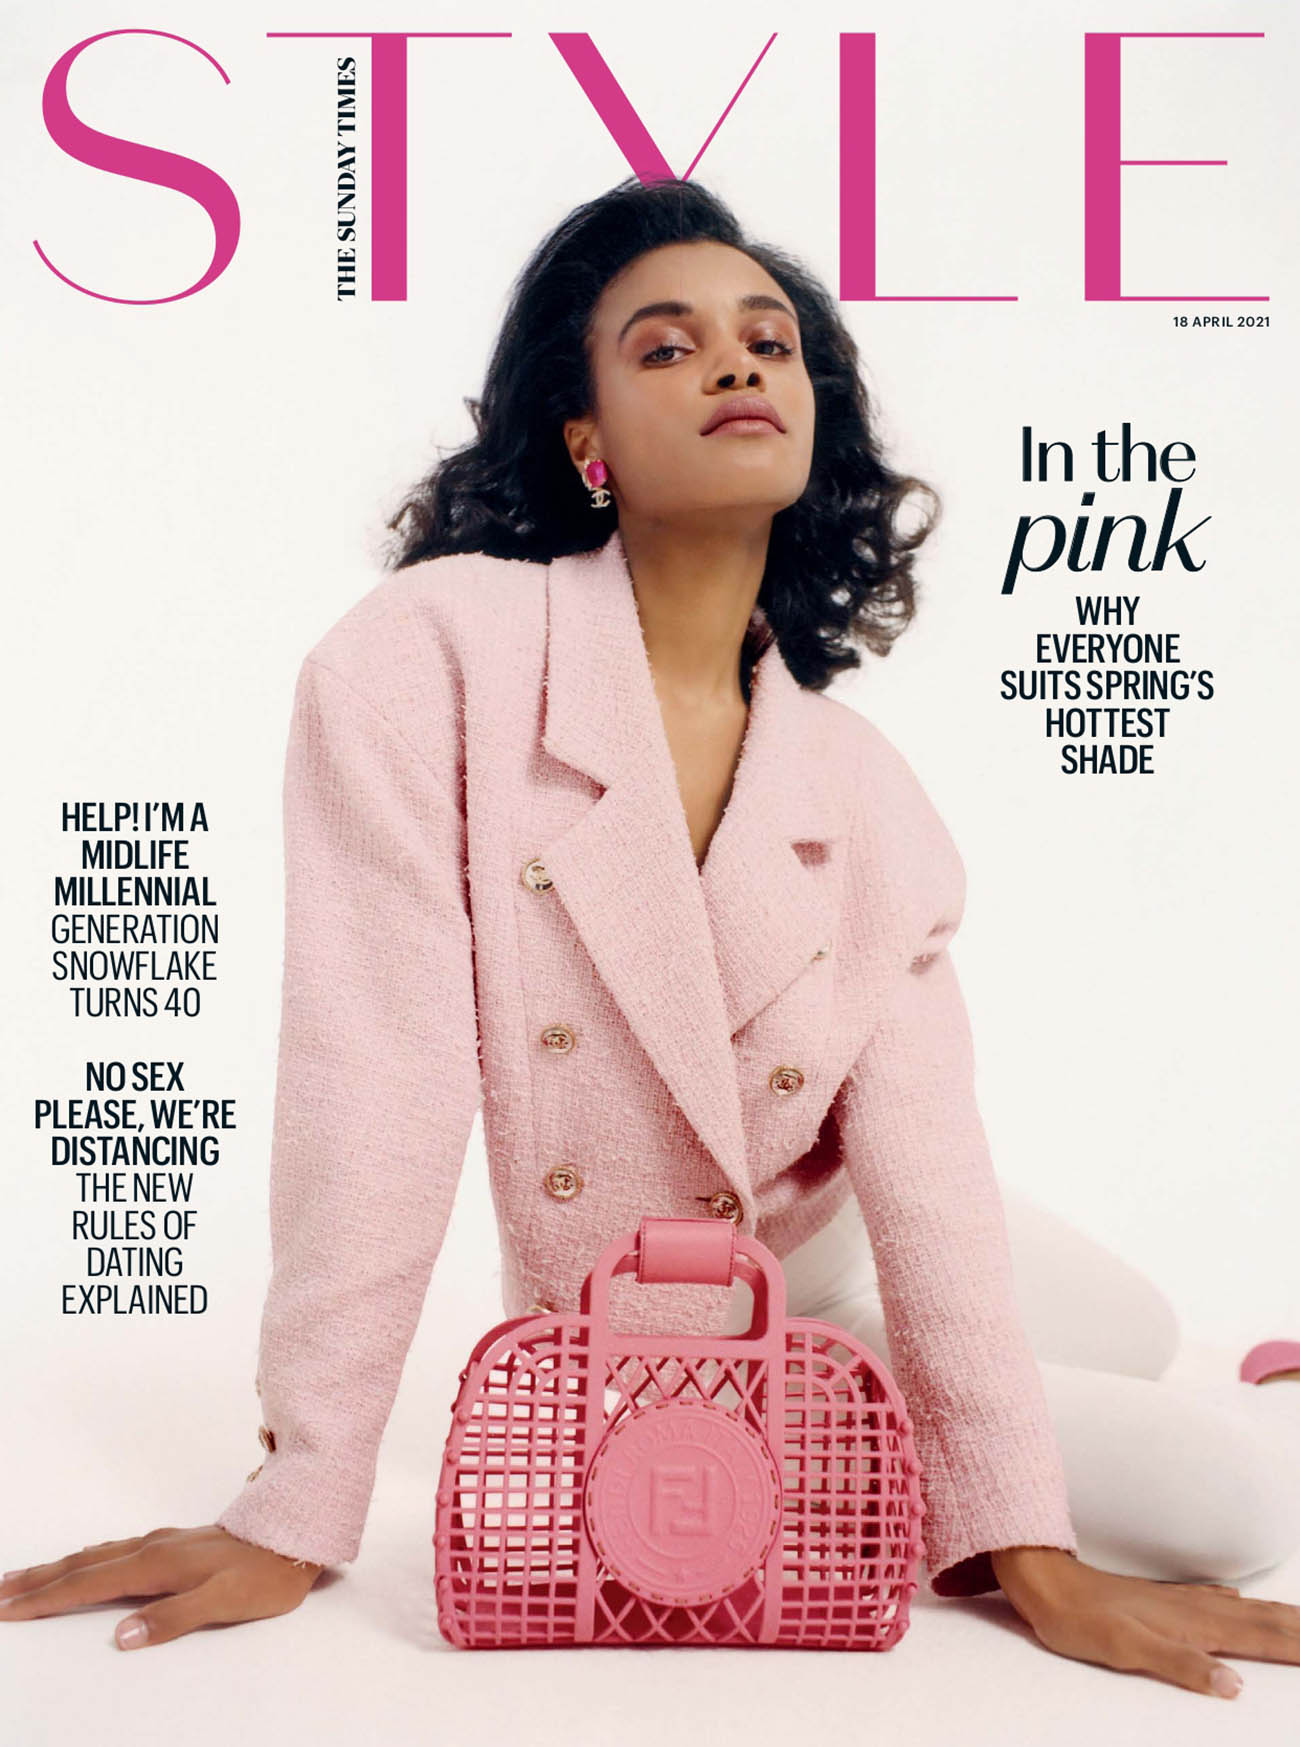 Amandine Guihard covers The Sunday Times Style April 18th, 2021 by Juliette Cassidy